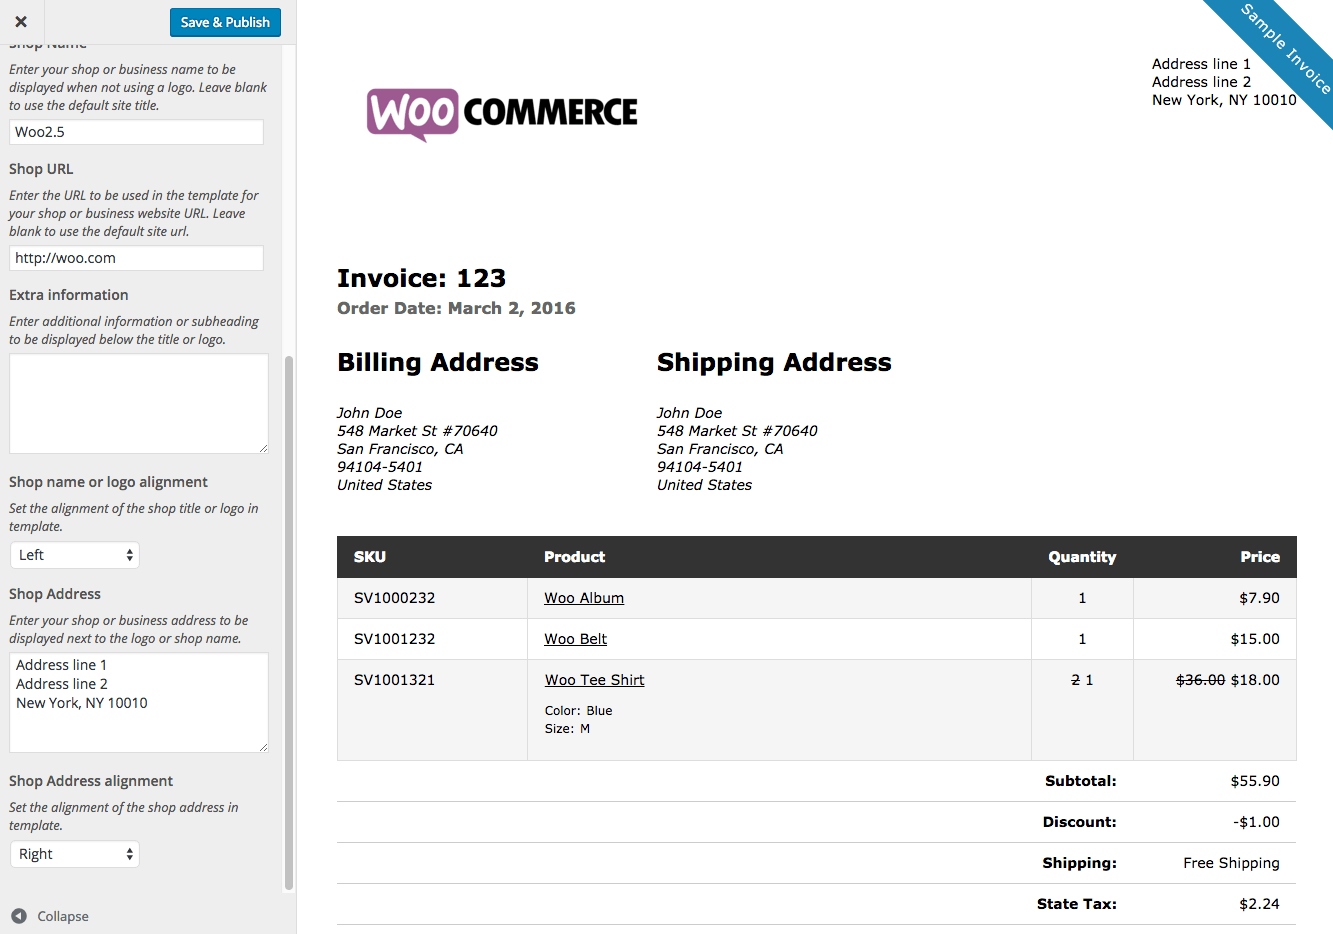 Sandiegolocksmithsus  Scenic Woocommerce Print Invoices Amp Packing Lists  Woocommerce Docs With Glamorous Woocommerce Print Invoices  Packing Lists Customizer With Delightful Free Invoice Generator Online Also Example Tax Invoice In Addition Nab Invoice Finance And Wordpress Invoices As Well As Australian Invoice Template Word Additionally Free Invoices Uk From Docswoocommercecom With Sandiegolocksmithsus  Glamorous Woocommerce Print Invoices Amp Packing Lists  Woocommerce Docs With Delightful Woocommerce Print Invoices  Packing Lists Customizer And Scenic Free Invoice Generator Online Also Example Tax Invoice In Addition Nab Invoice Finance From Docswoocommercecom